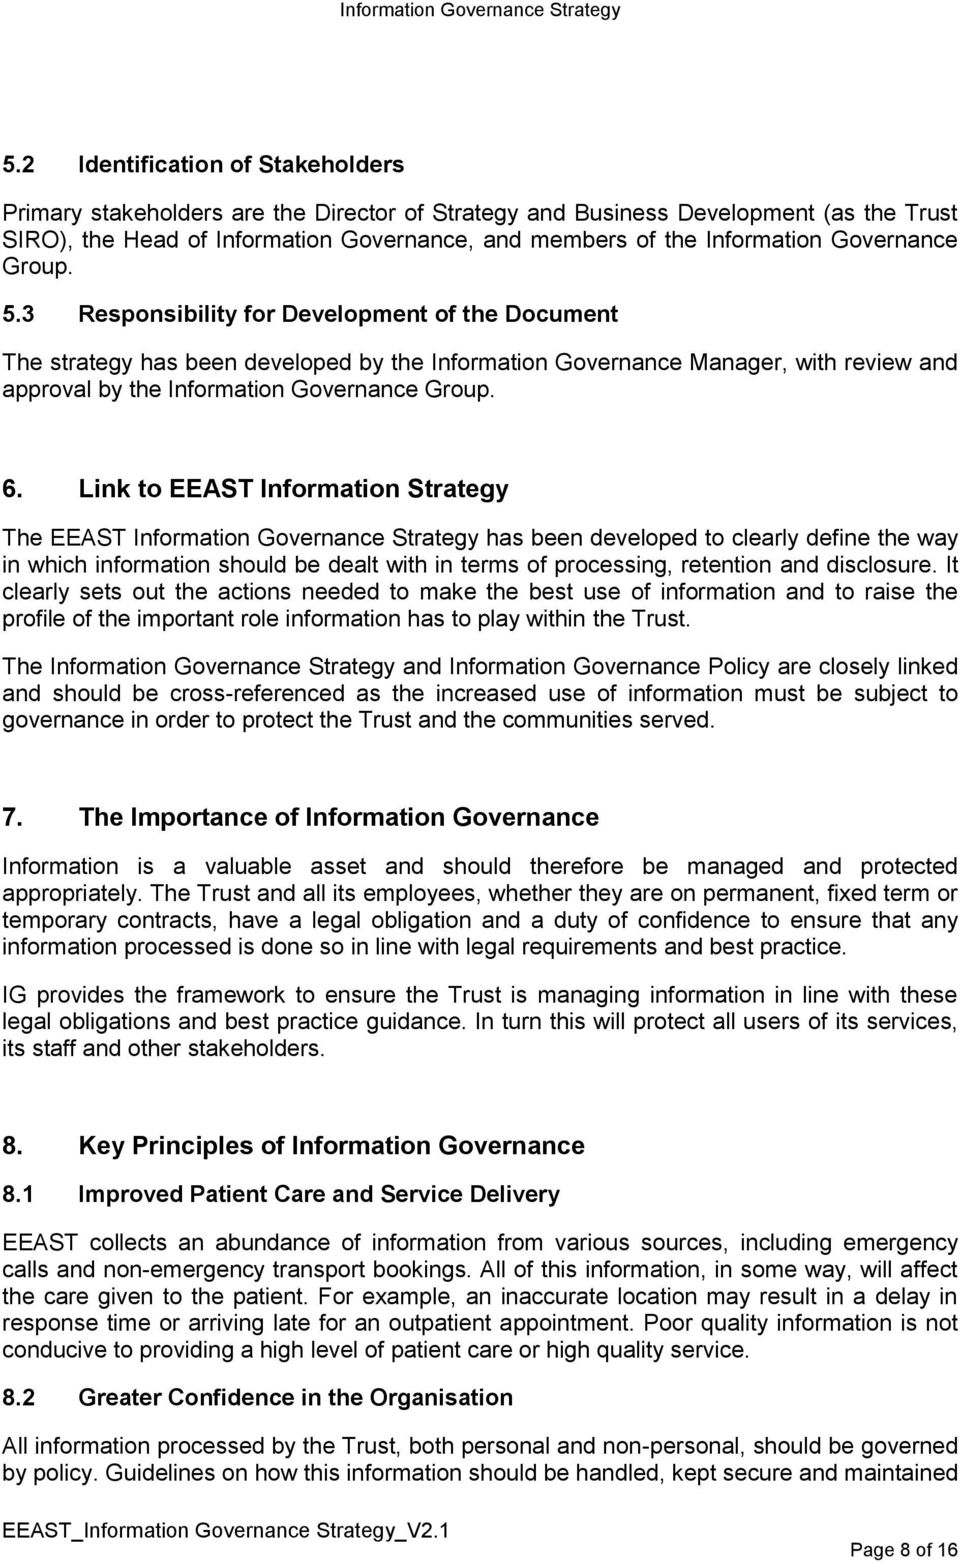 3 Responsibility for Development of the Document The strategy has been developed by the Information Governance Manager, with review and approval by the Information Governance Group. 6.